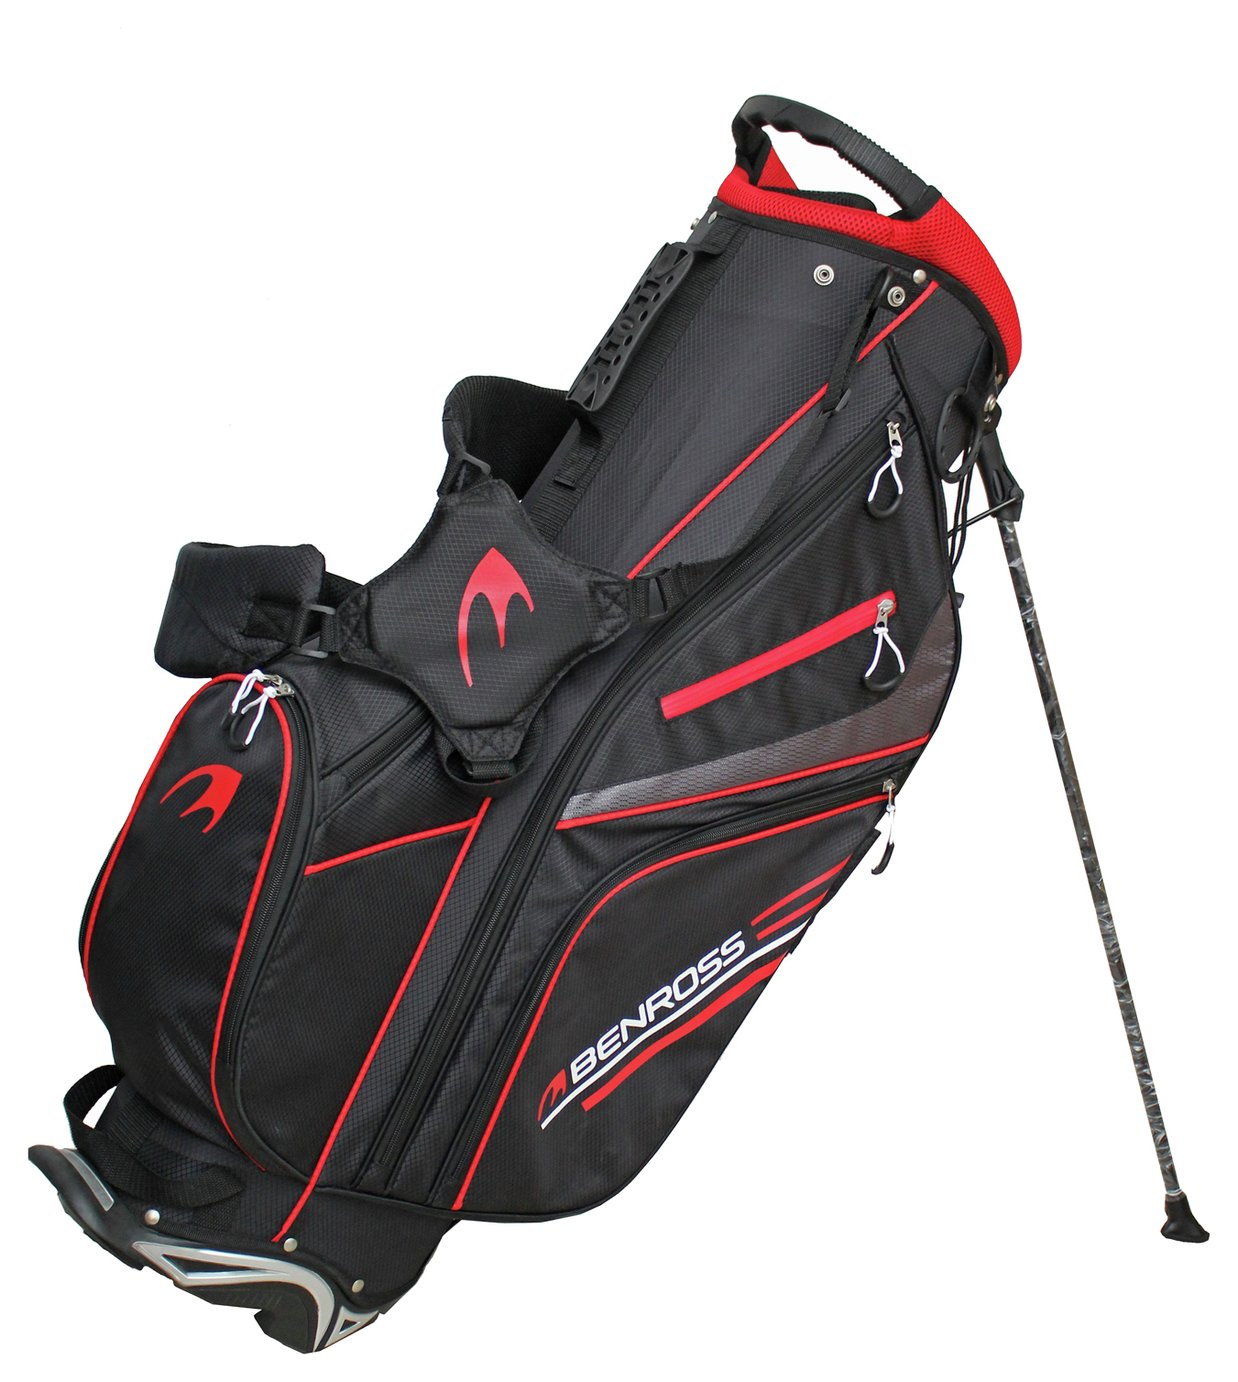 Benross Golf HTX Compressor Stand Bag - Black